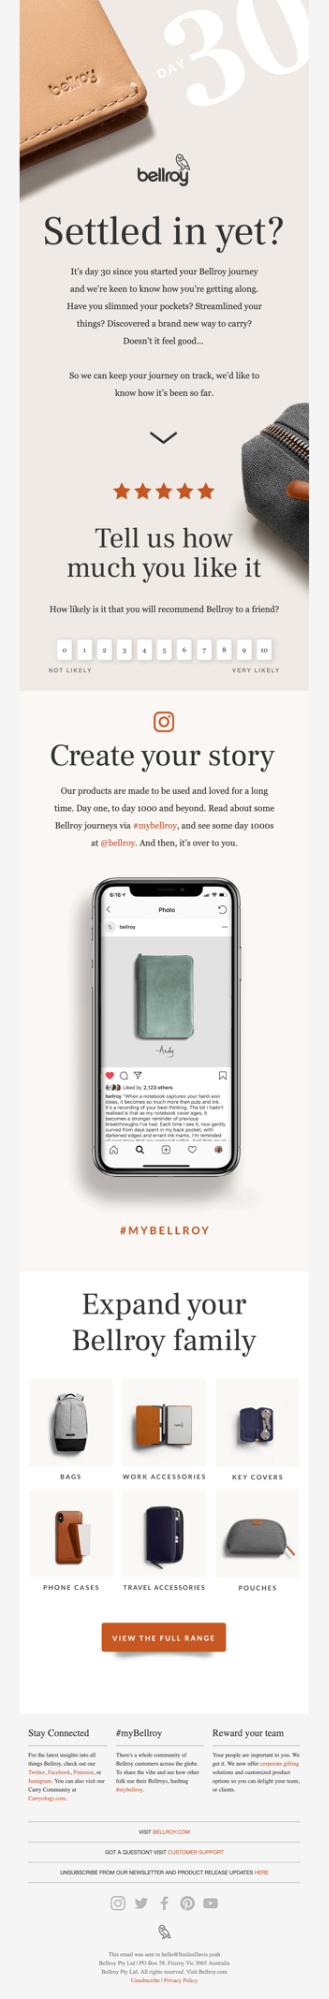 Automated Email From Bellroy Asking for Feedback From the Subscriber